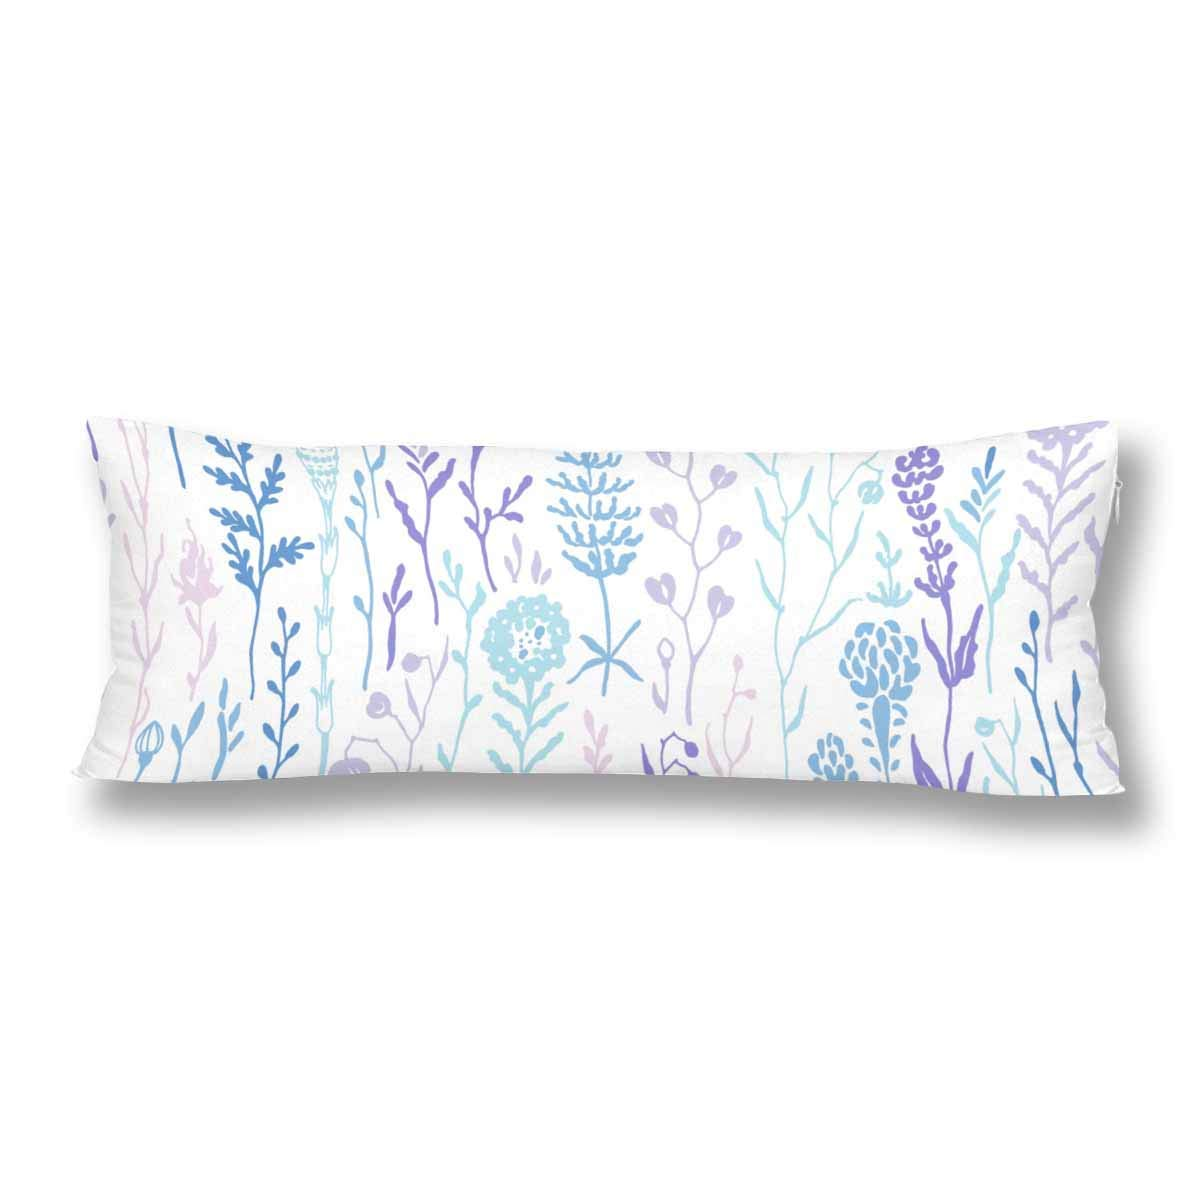 ABPHOTO Hand Drawn Meadow Plant Blue Purple Summer White Body Pillow Covers Case Protector 20x60 inch